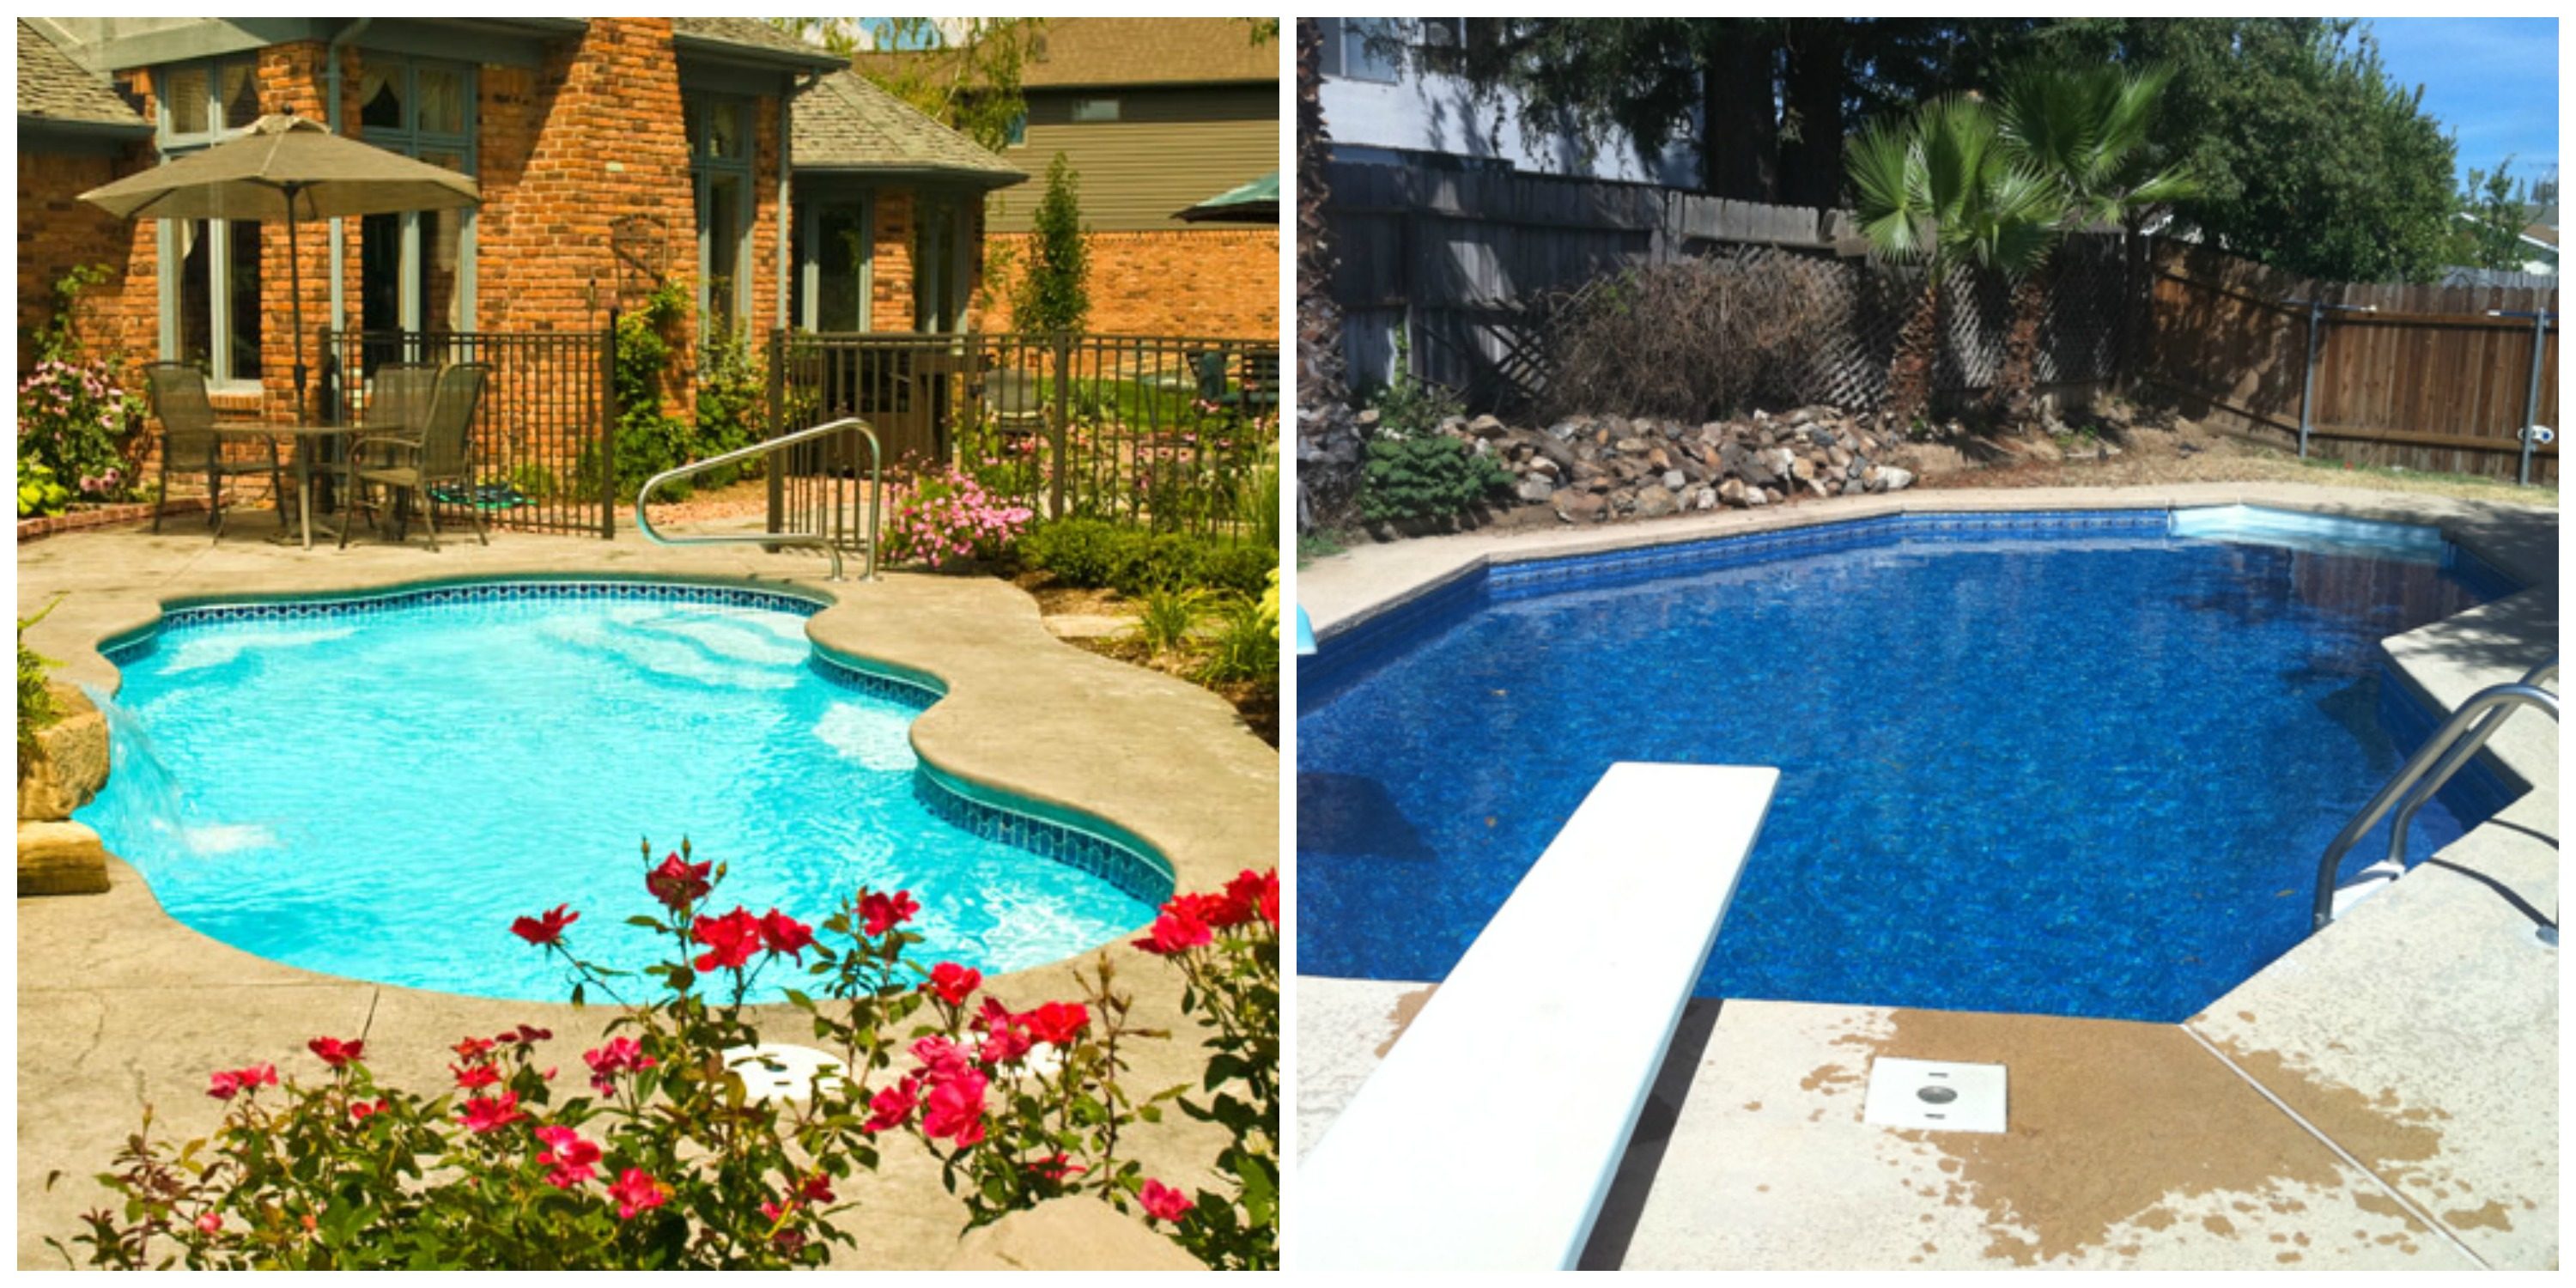 Fiberglass Pools Vs Vinyl Liner Pools Brothers Pool Blog